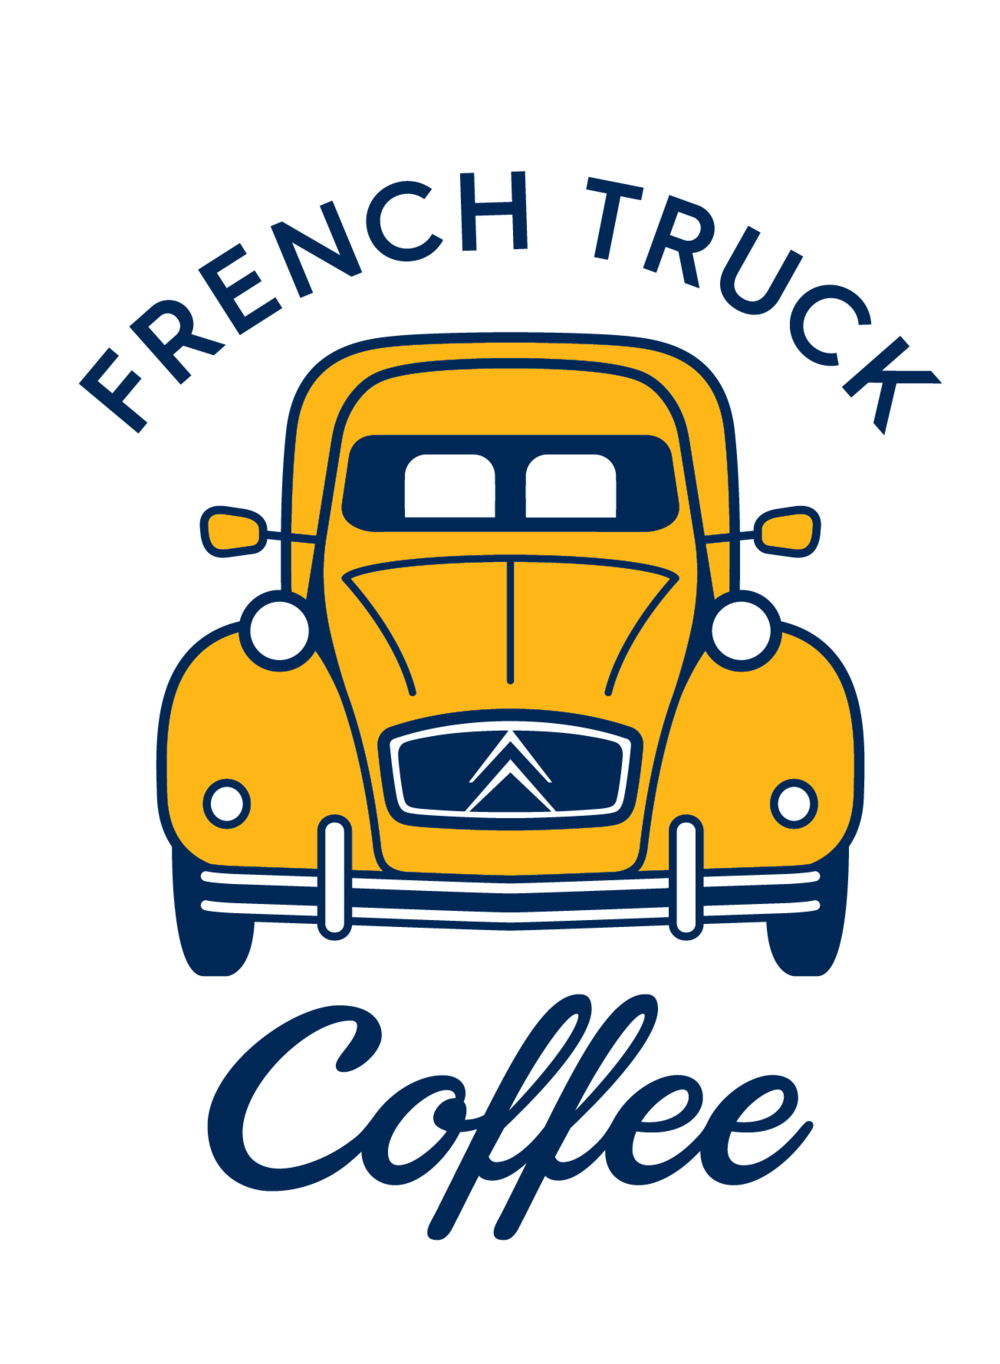 French clipart french cafe. Classic truck enamel pin